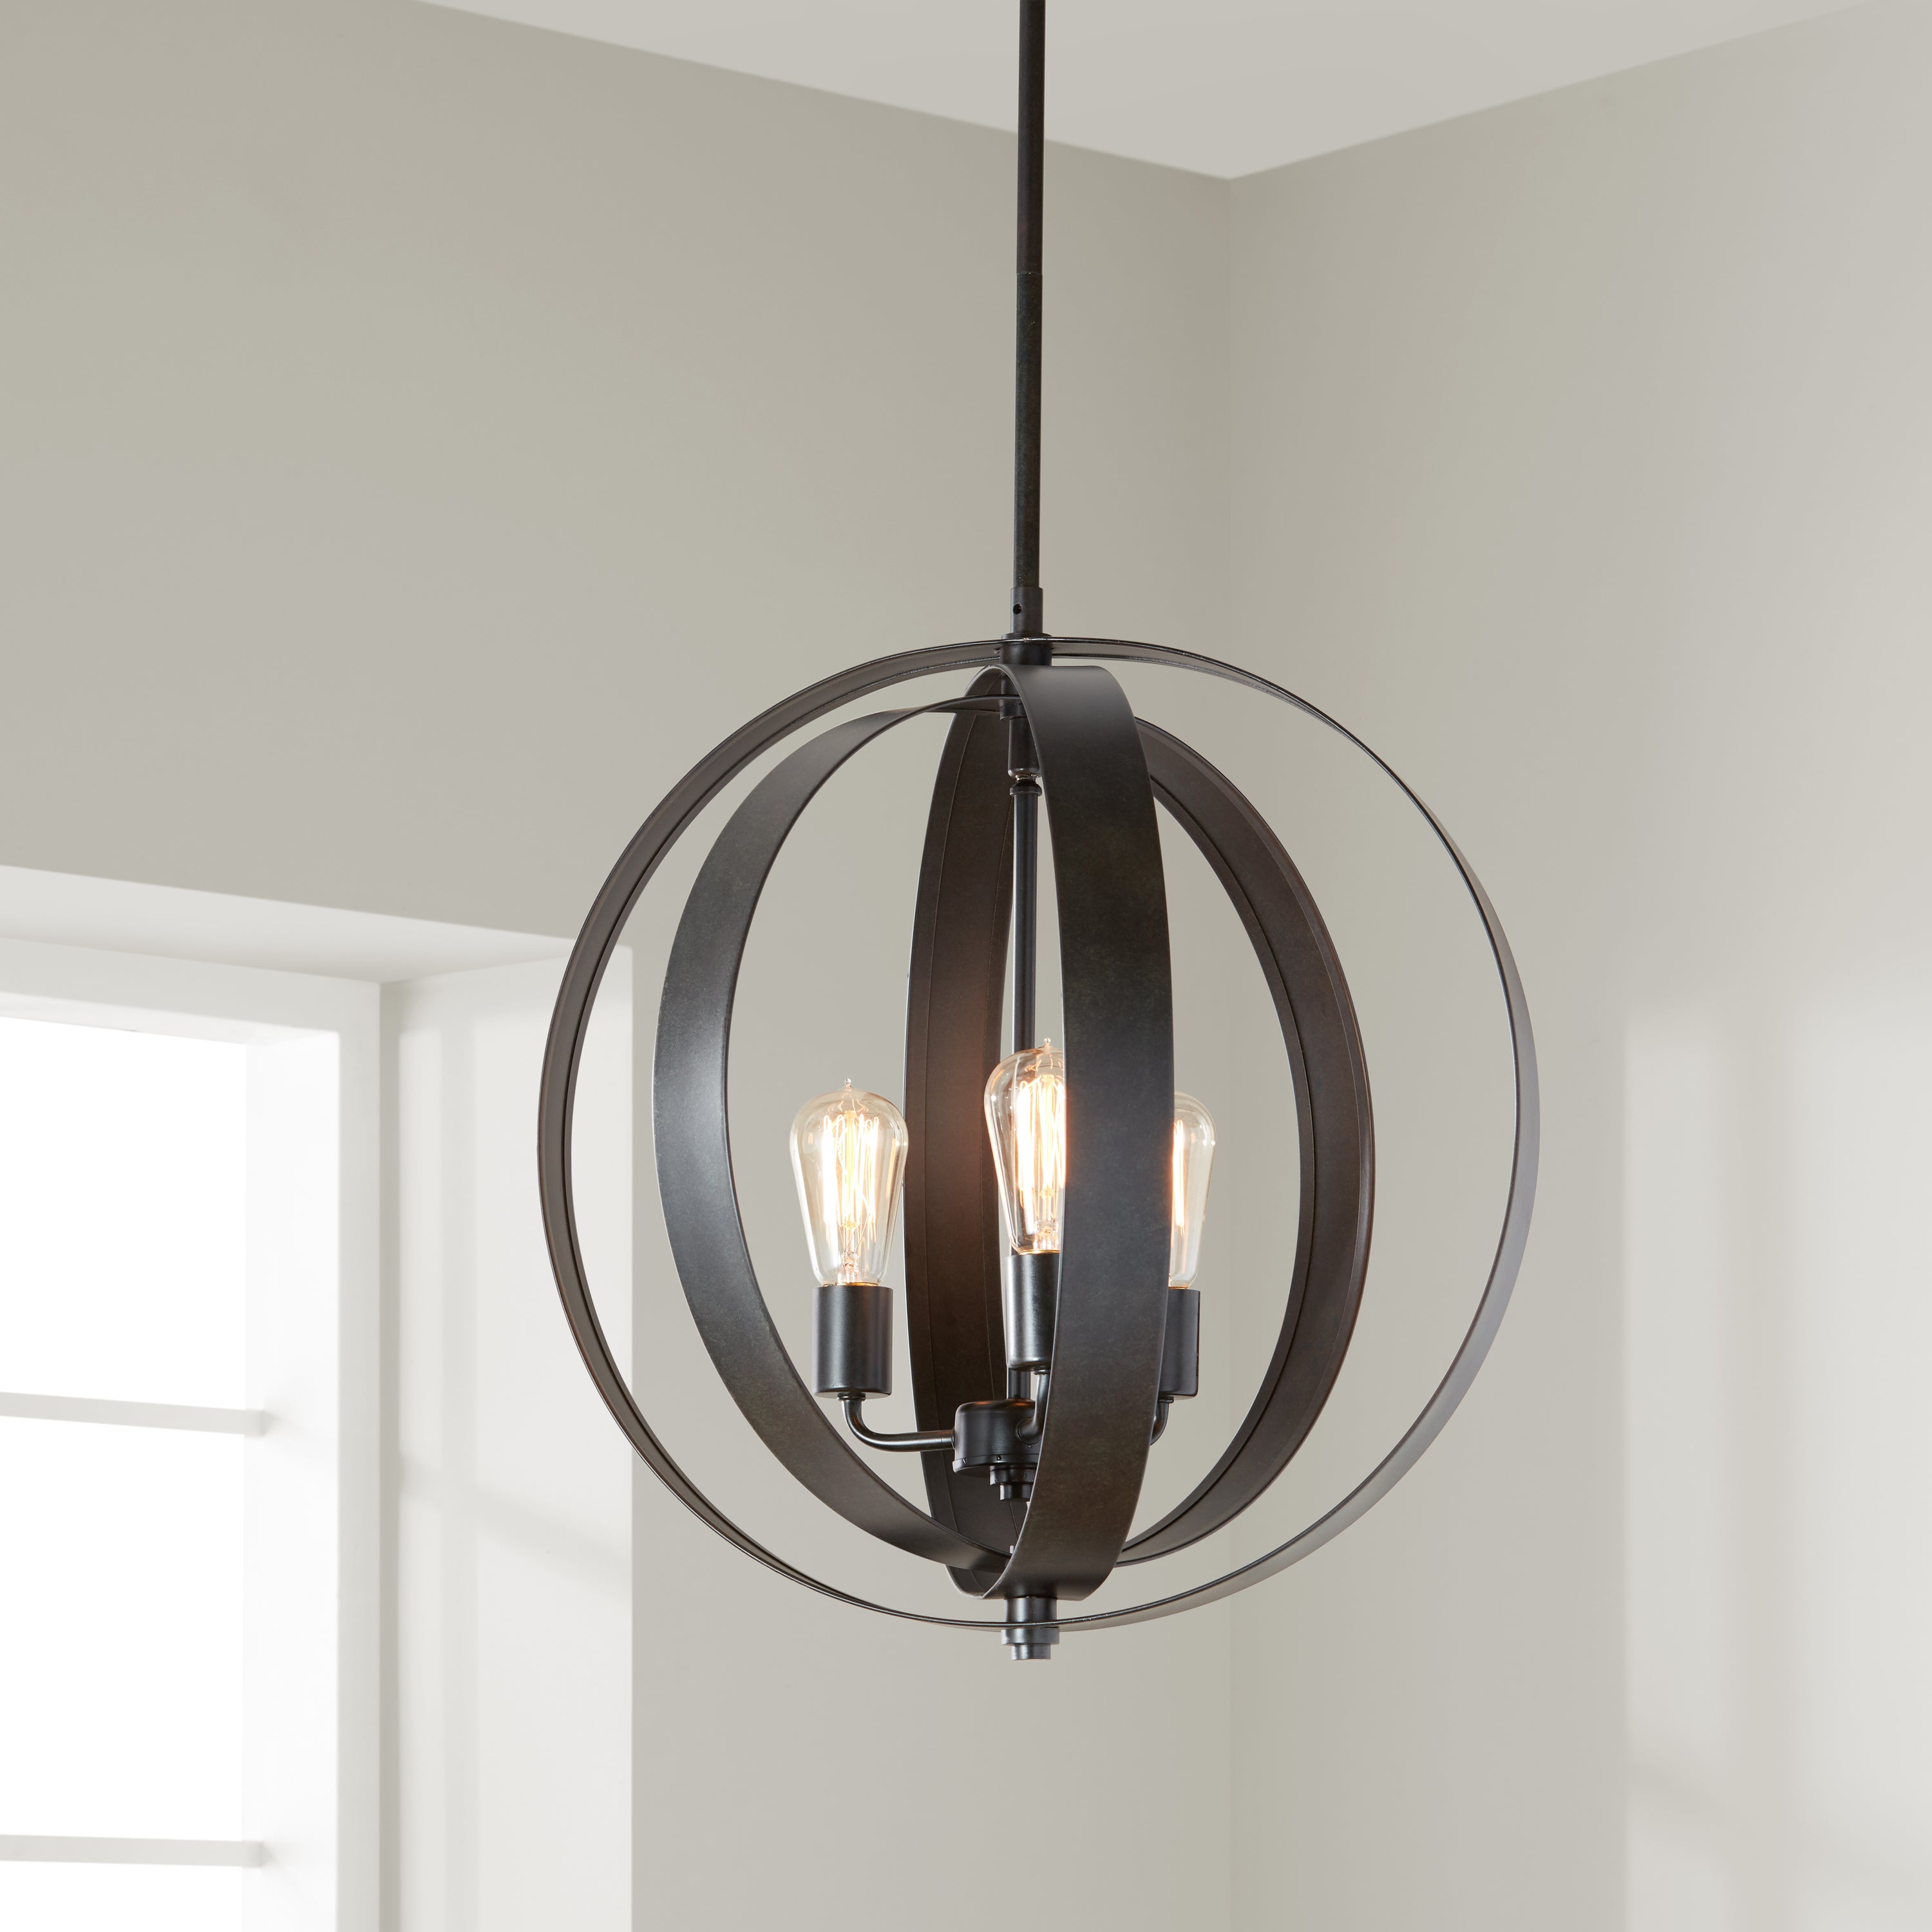 Clay Alder Home Cidy Antiqued Black 3 Light Orb Chandelier Free Shipping Today 8662822